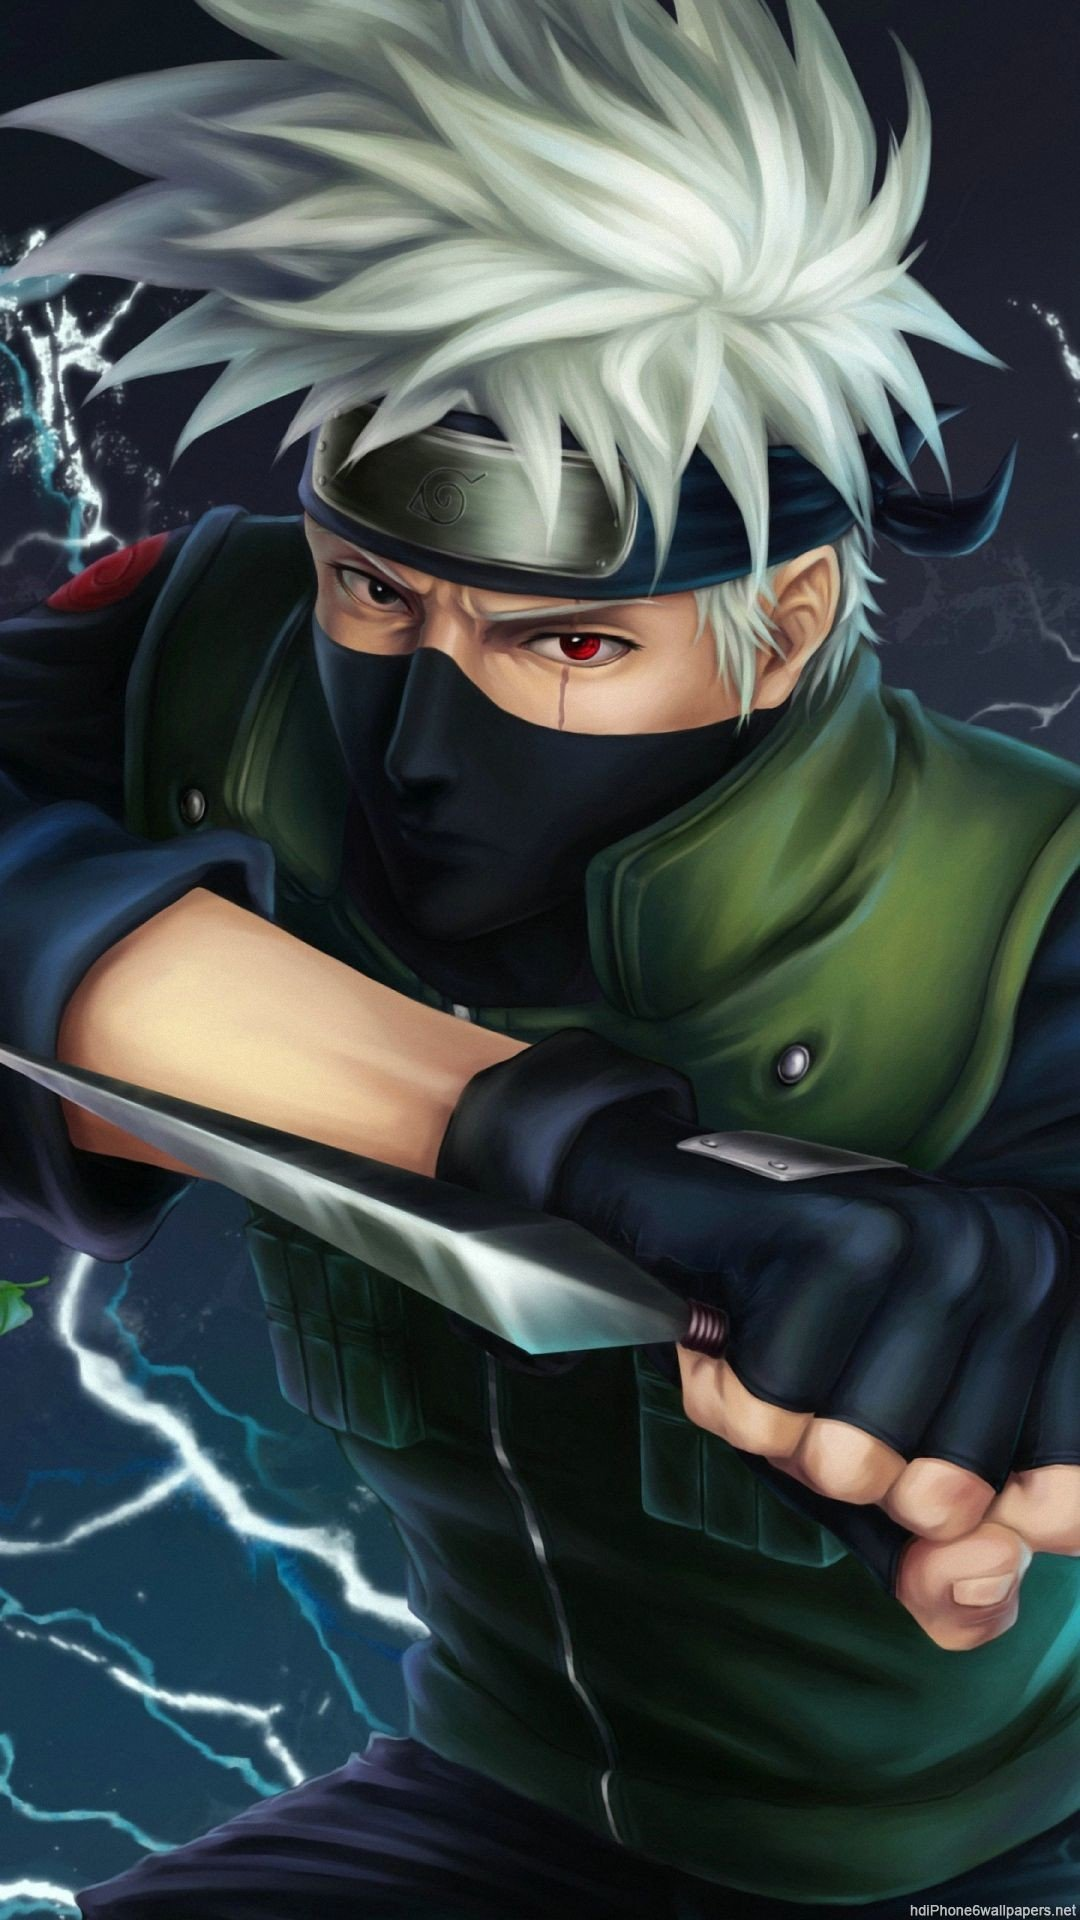 67 Kakashi Iphone Wallpapers on WallpaperPlay 1080x1920